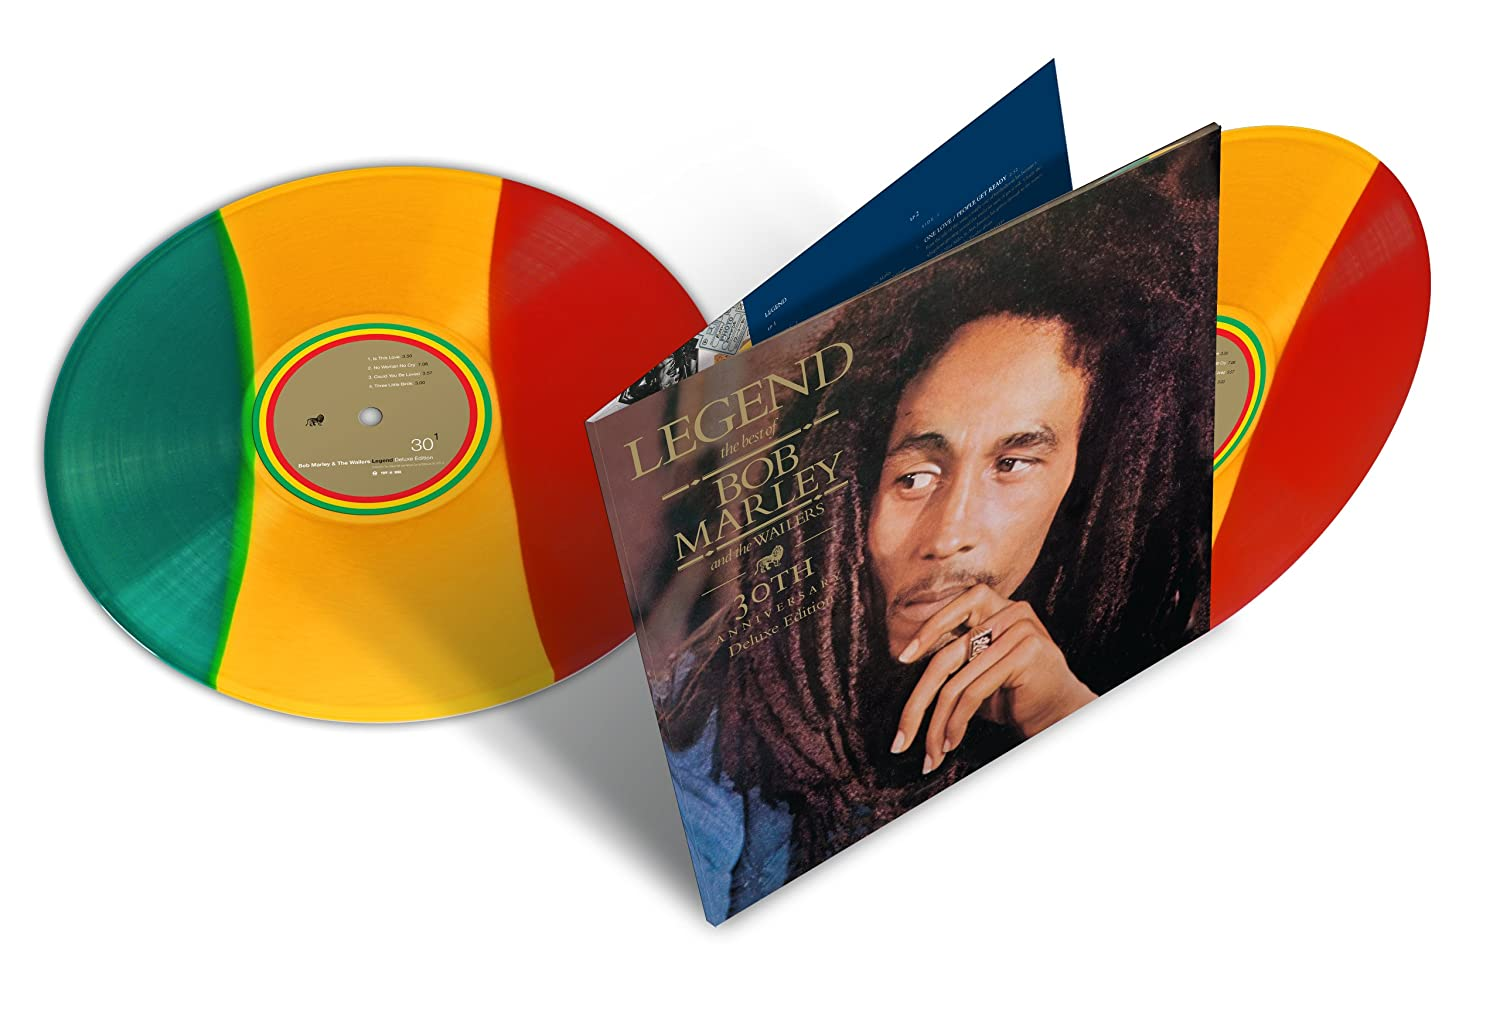 Bob marley and the wailers legend 30th anniversary edition tri bob marley and the wailers legend 30th anniversary edition tri color 2 lp amazon music thecheapjerseys Gallery